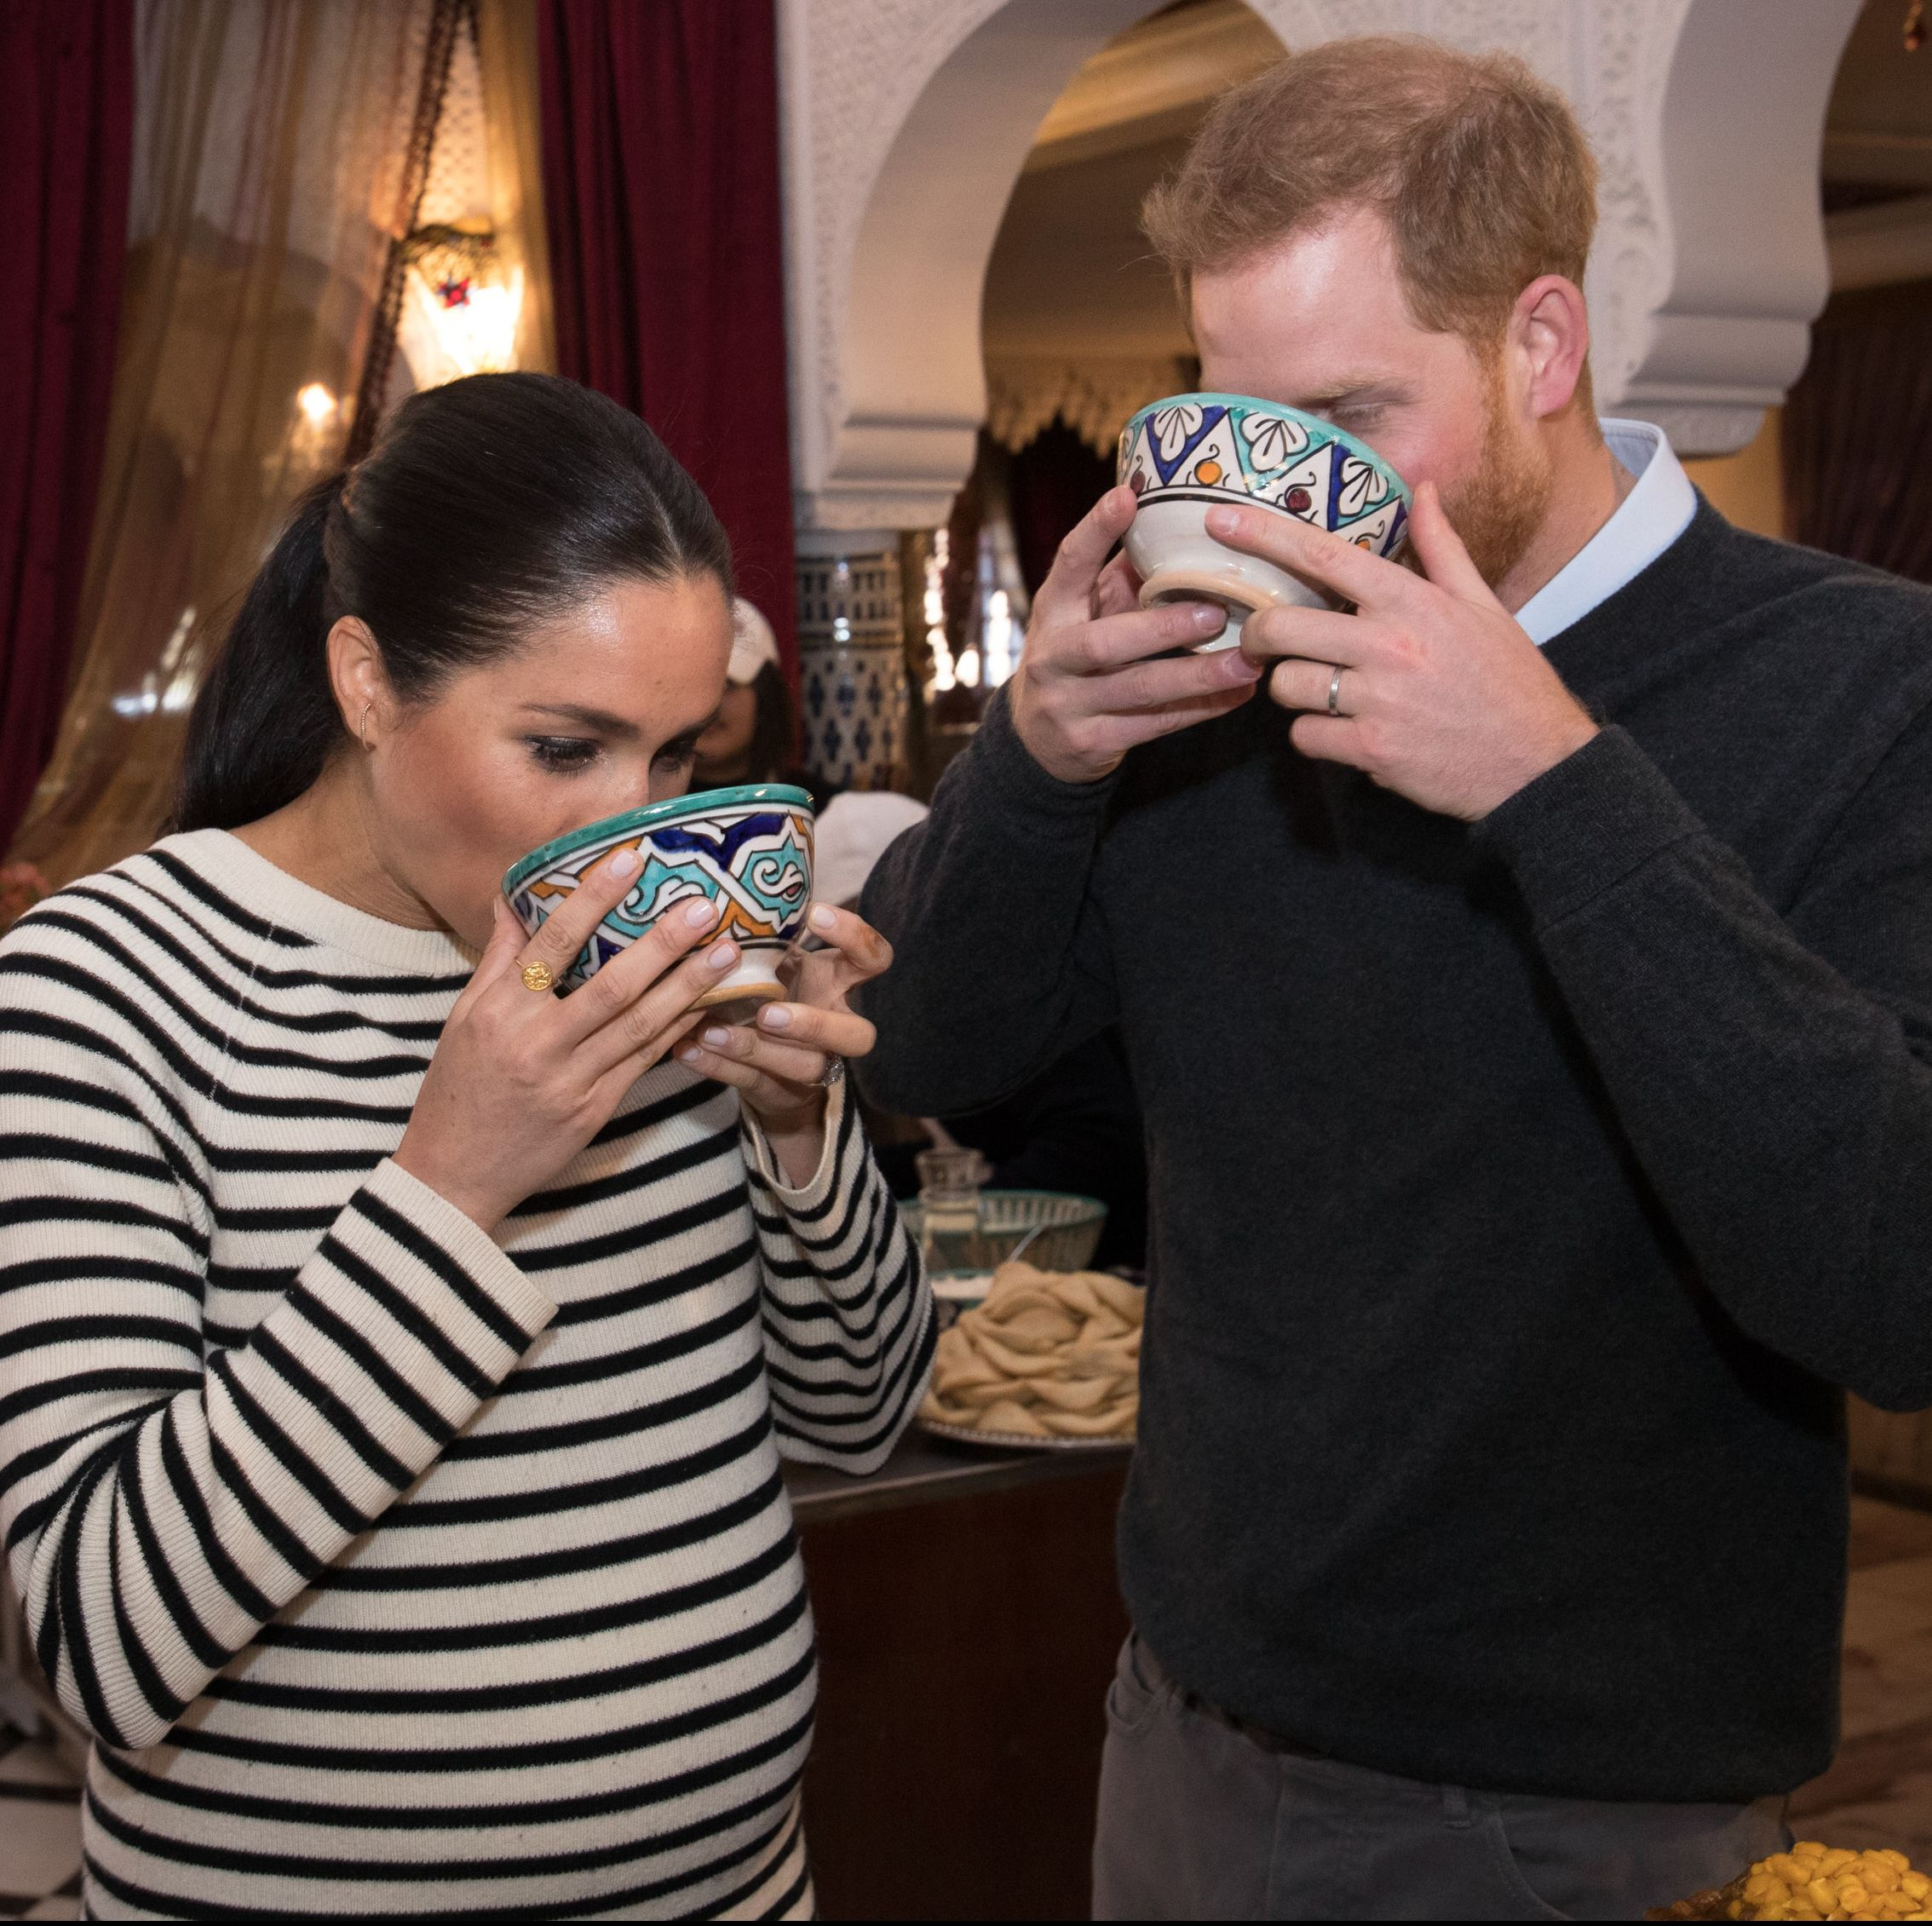 The Duke and Duchess of Sussex attend a cooking demonstration in Rabat, Morocco on February 25, 2019.